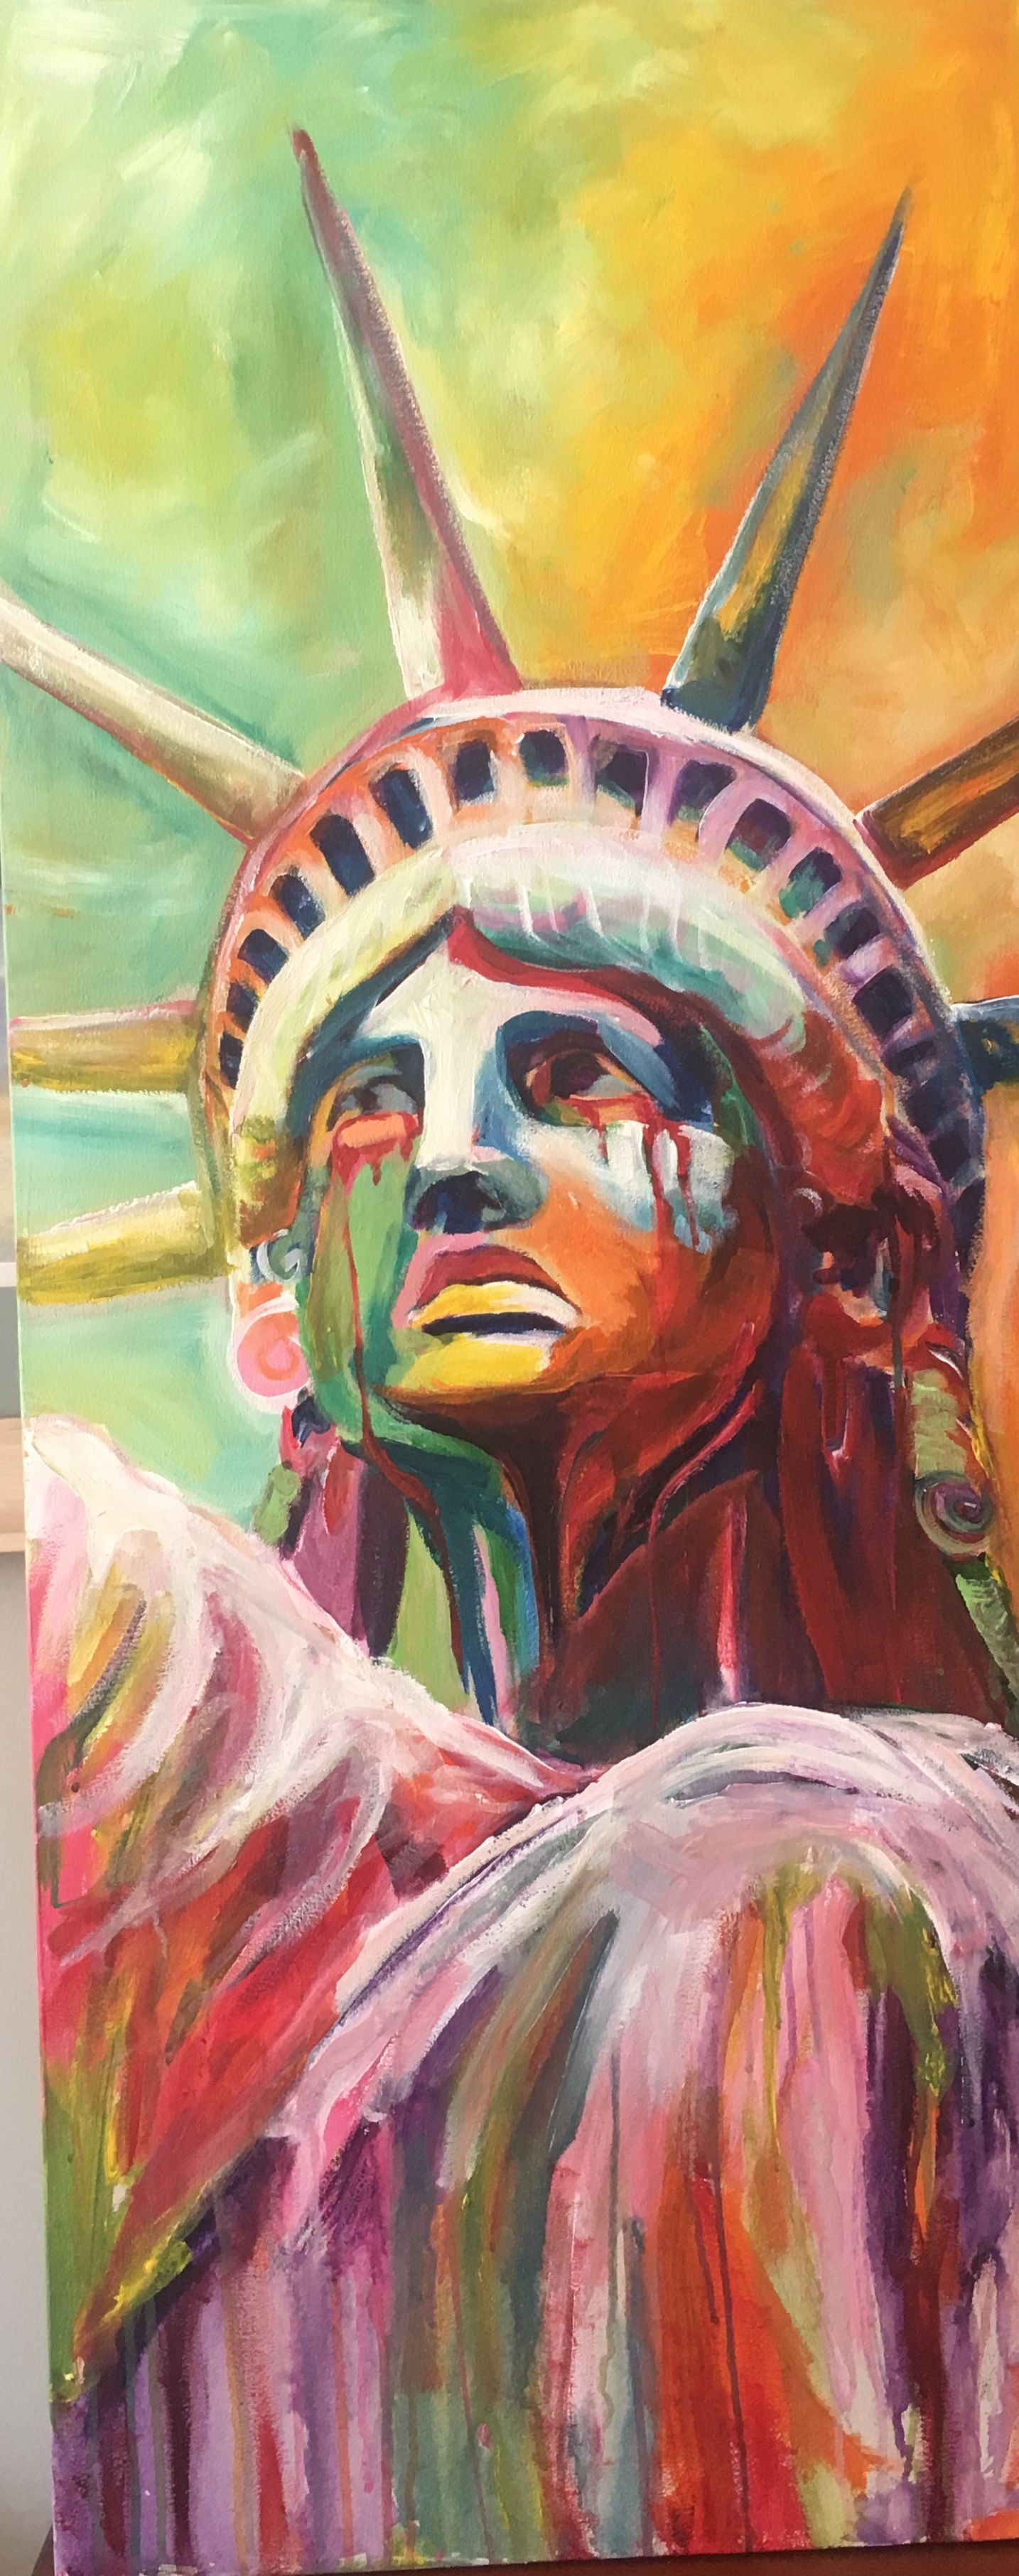 Picture Of Statue Of Liberty Crying